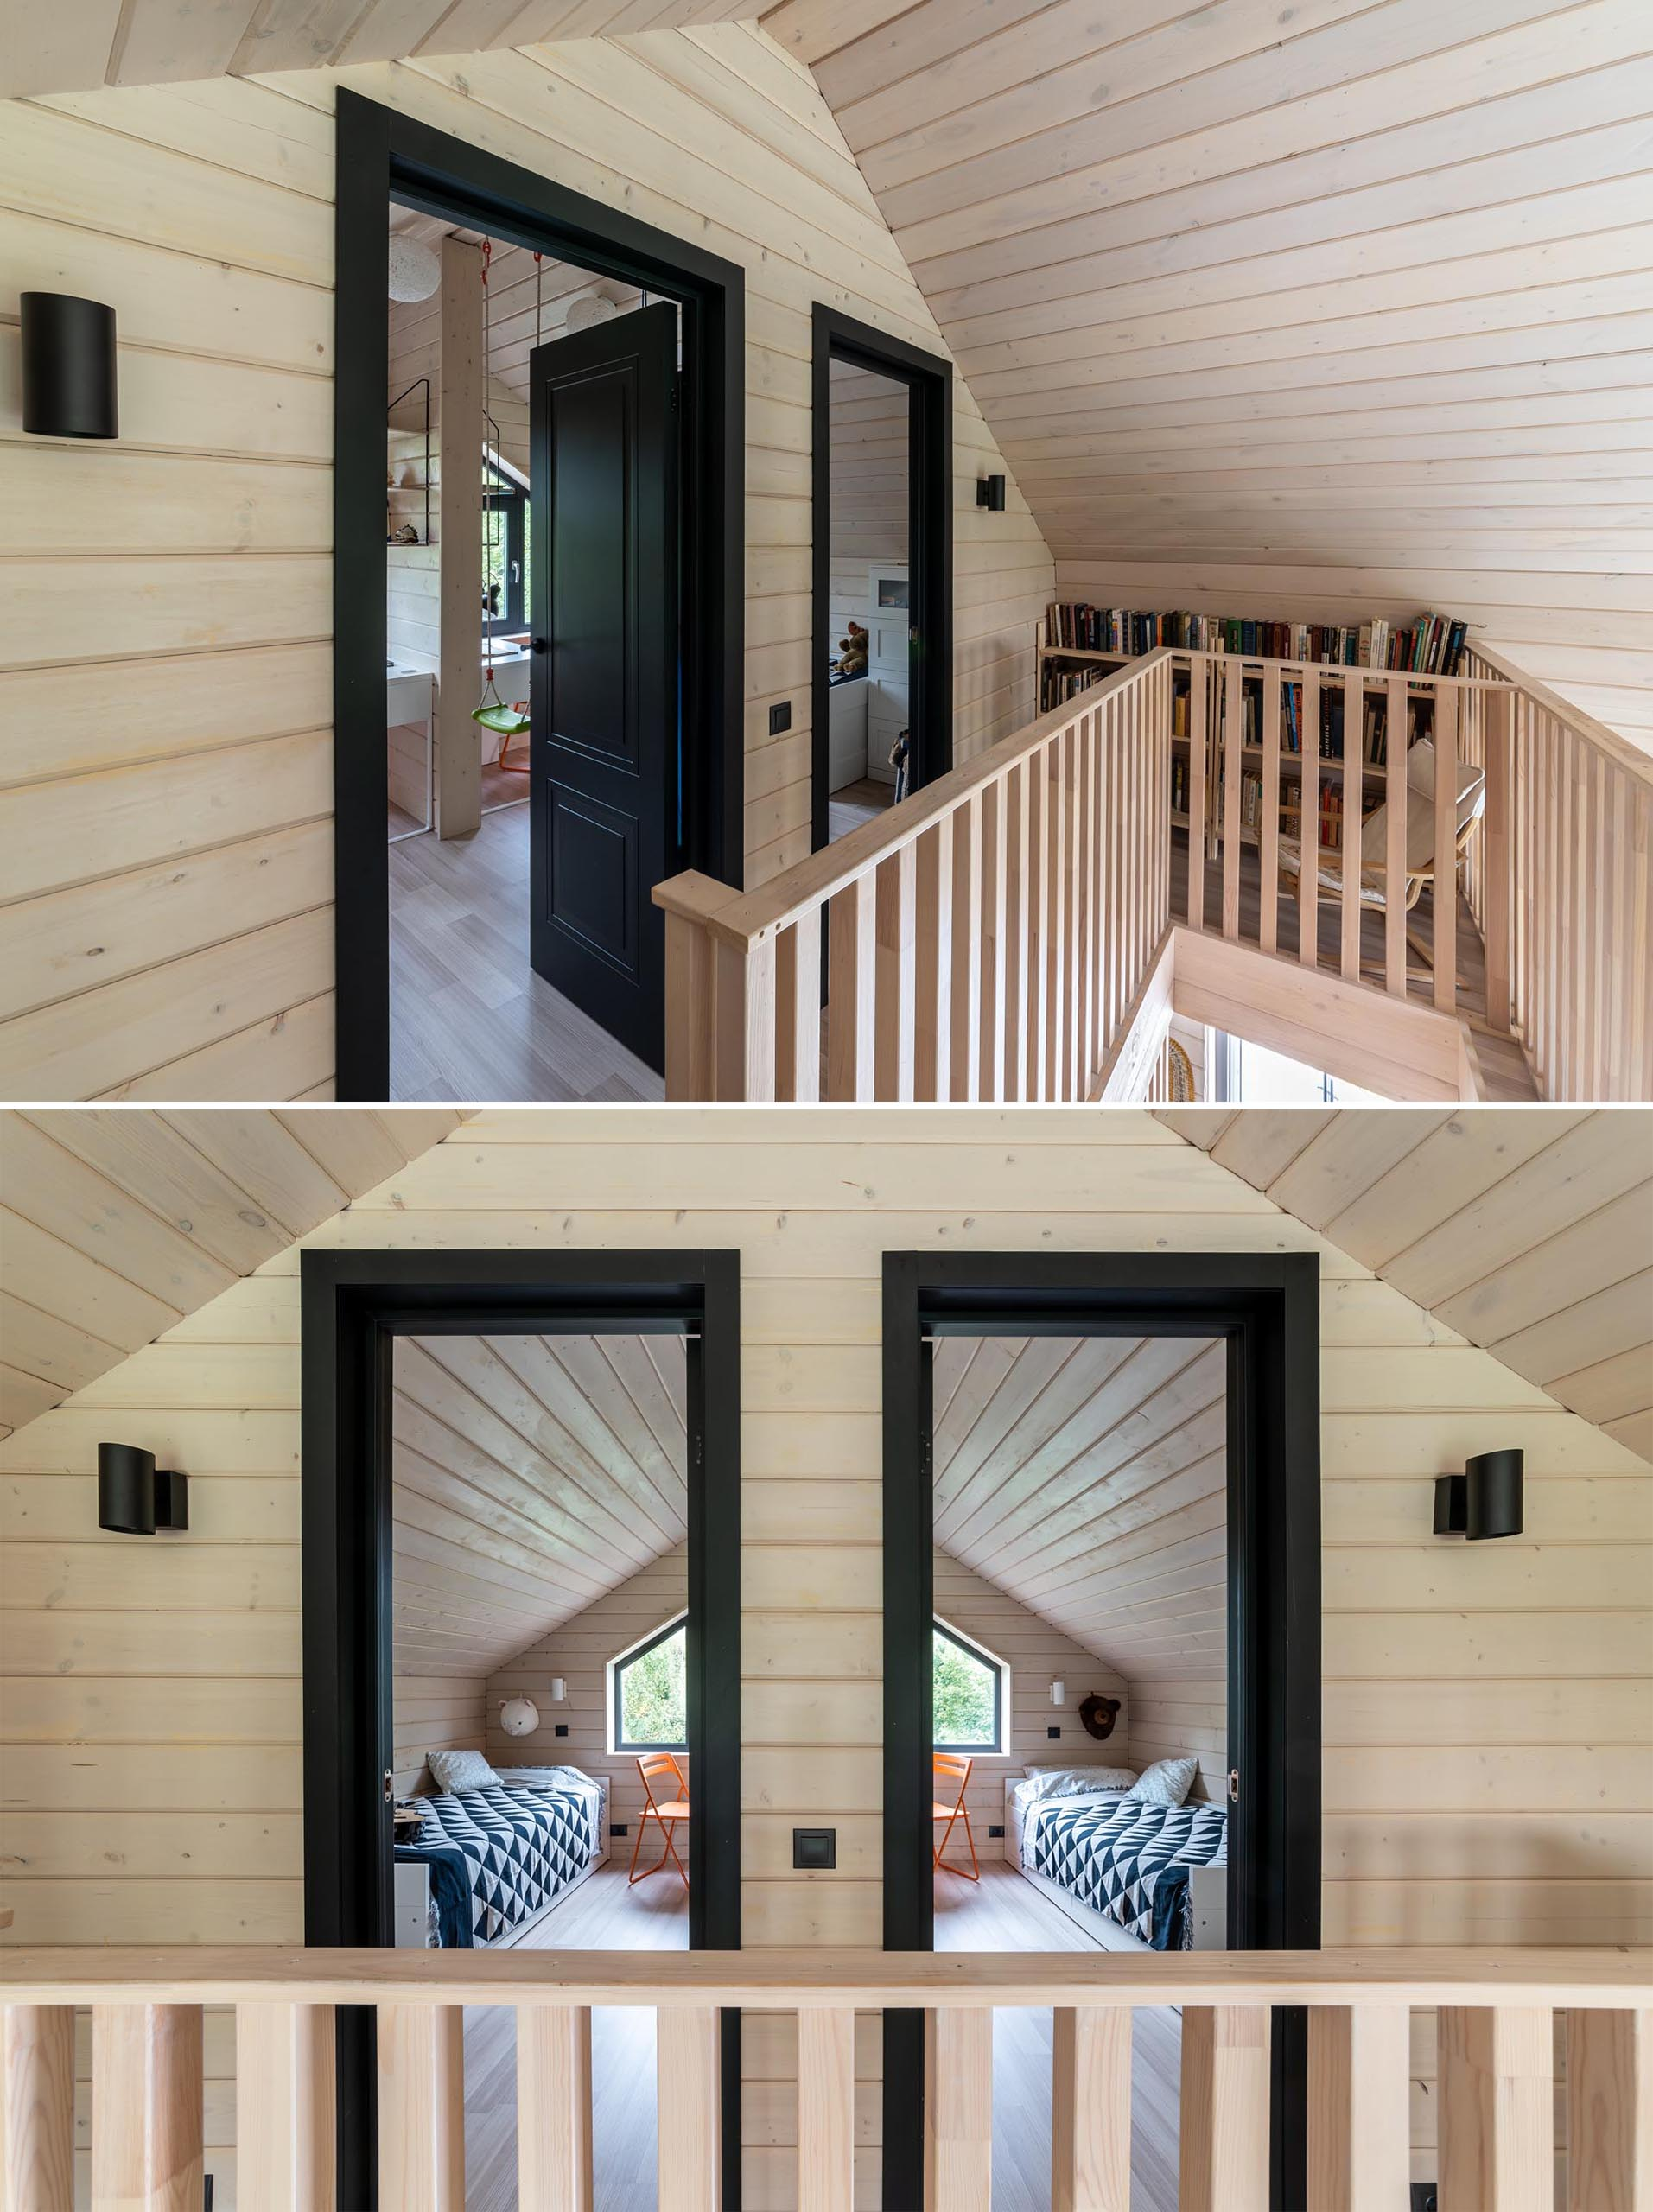 A modern barn-inspired home with tongue and groove wood siding and black accents.